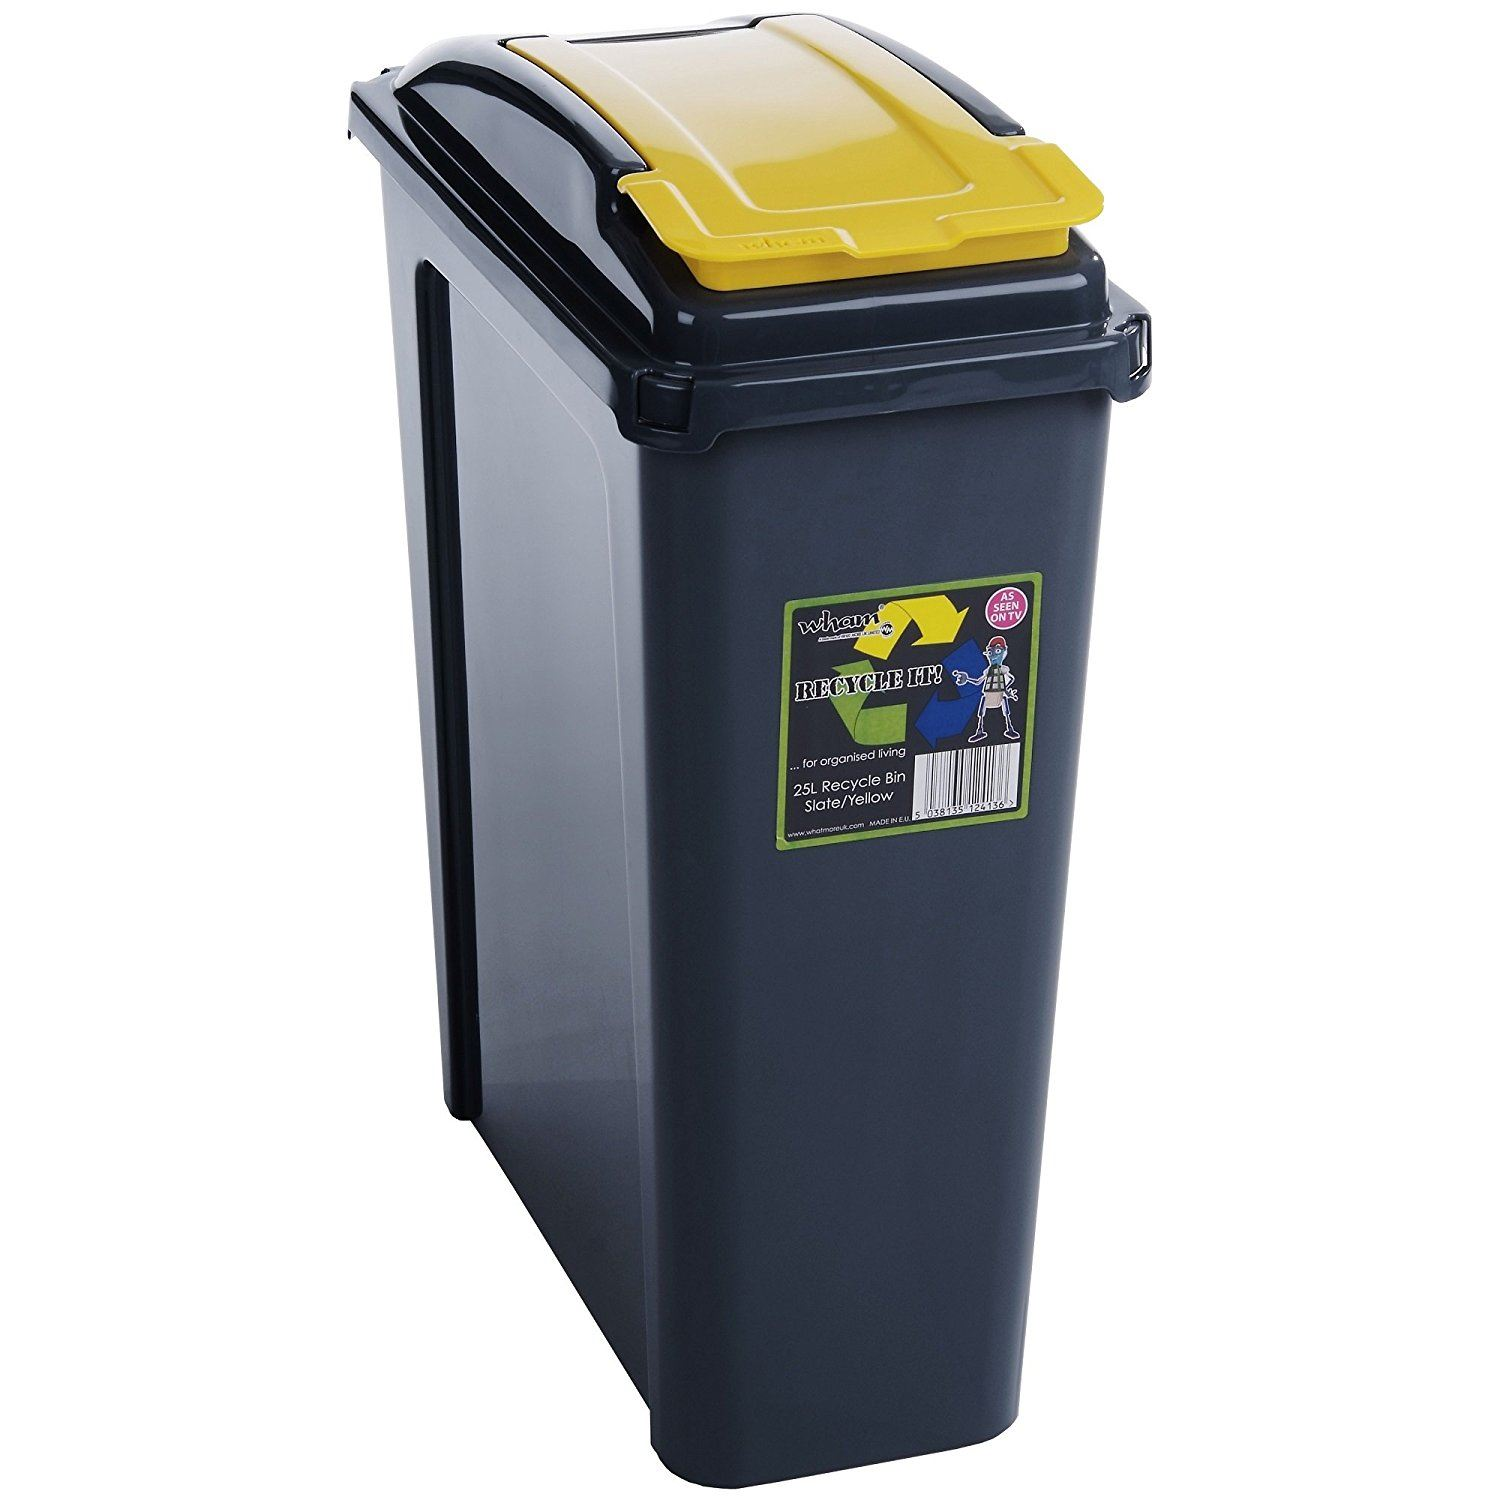 small recycling bins for kitchen refurbished cabinets sale 25l 50l plastic recycle bin lid rubbish